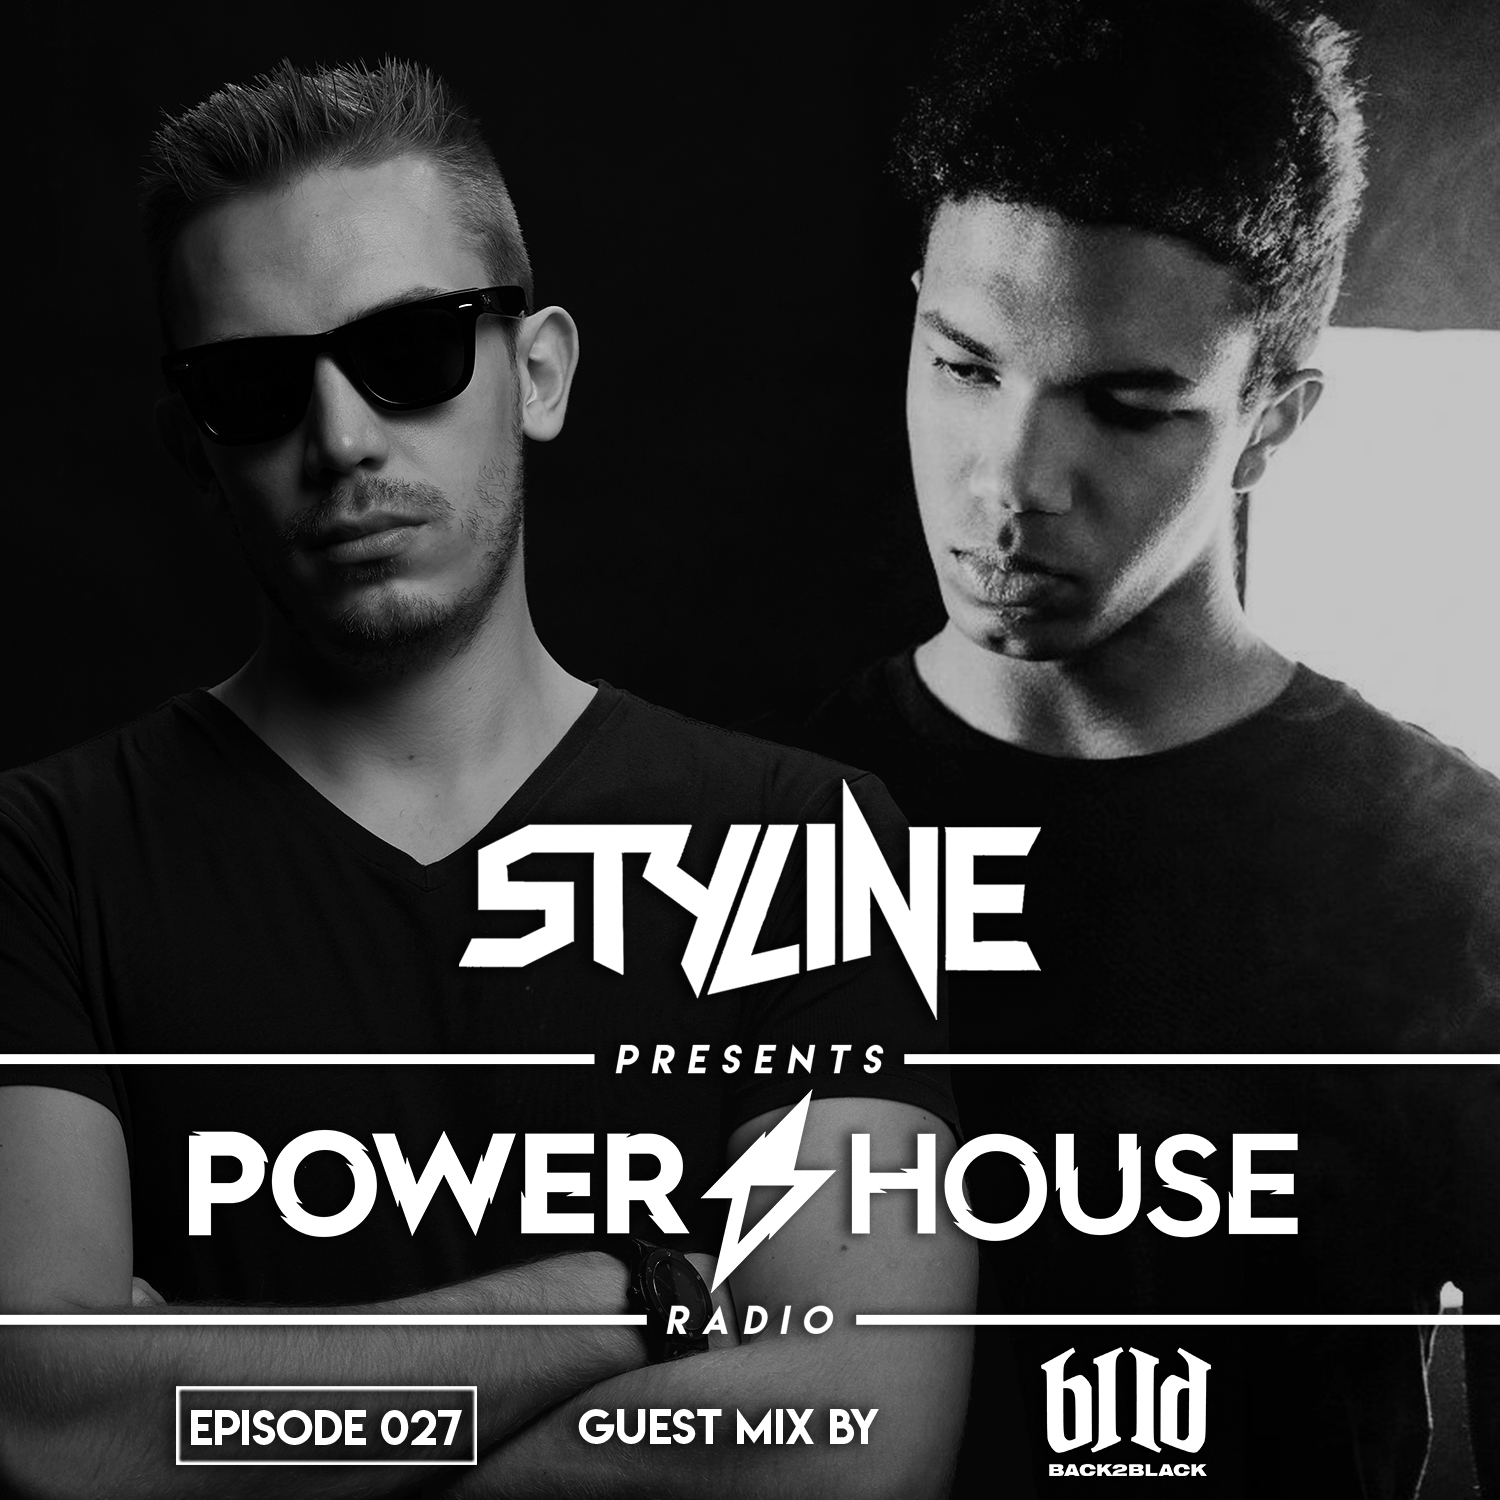 POWER HOUSE RADIO #27 (BACK2BLACK GUESTMIX).jpg